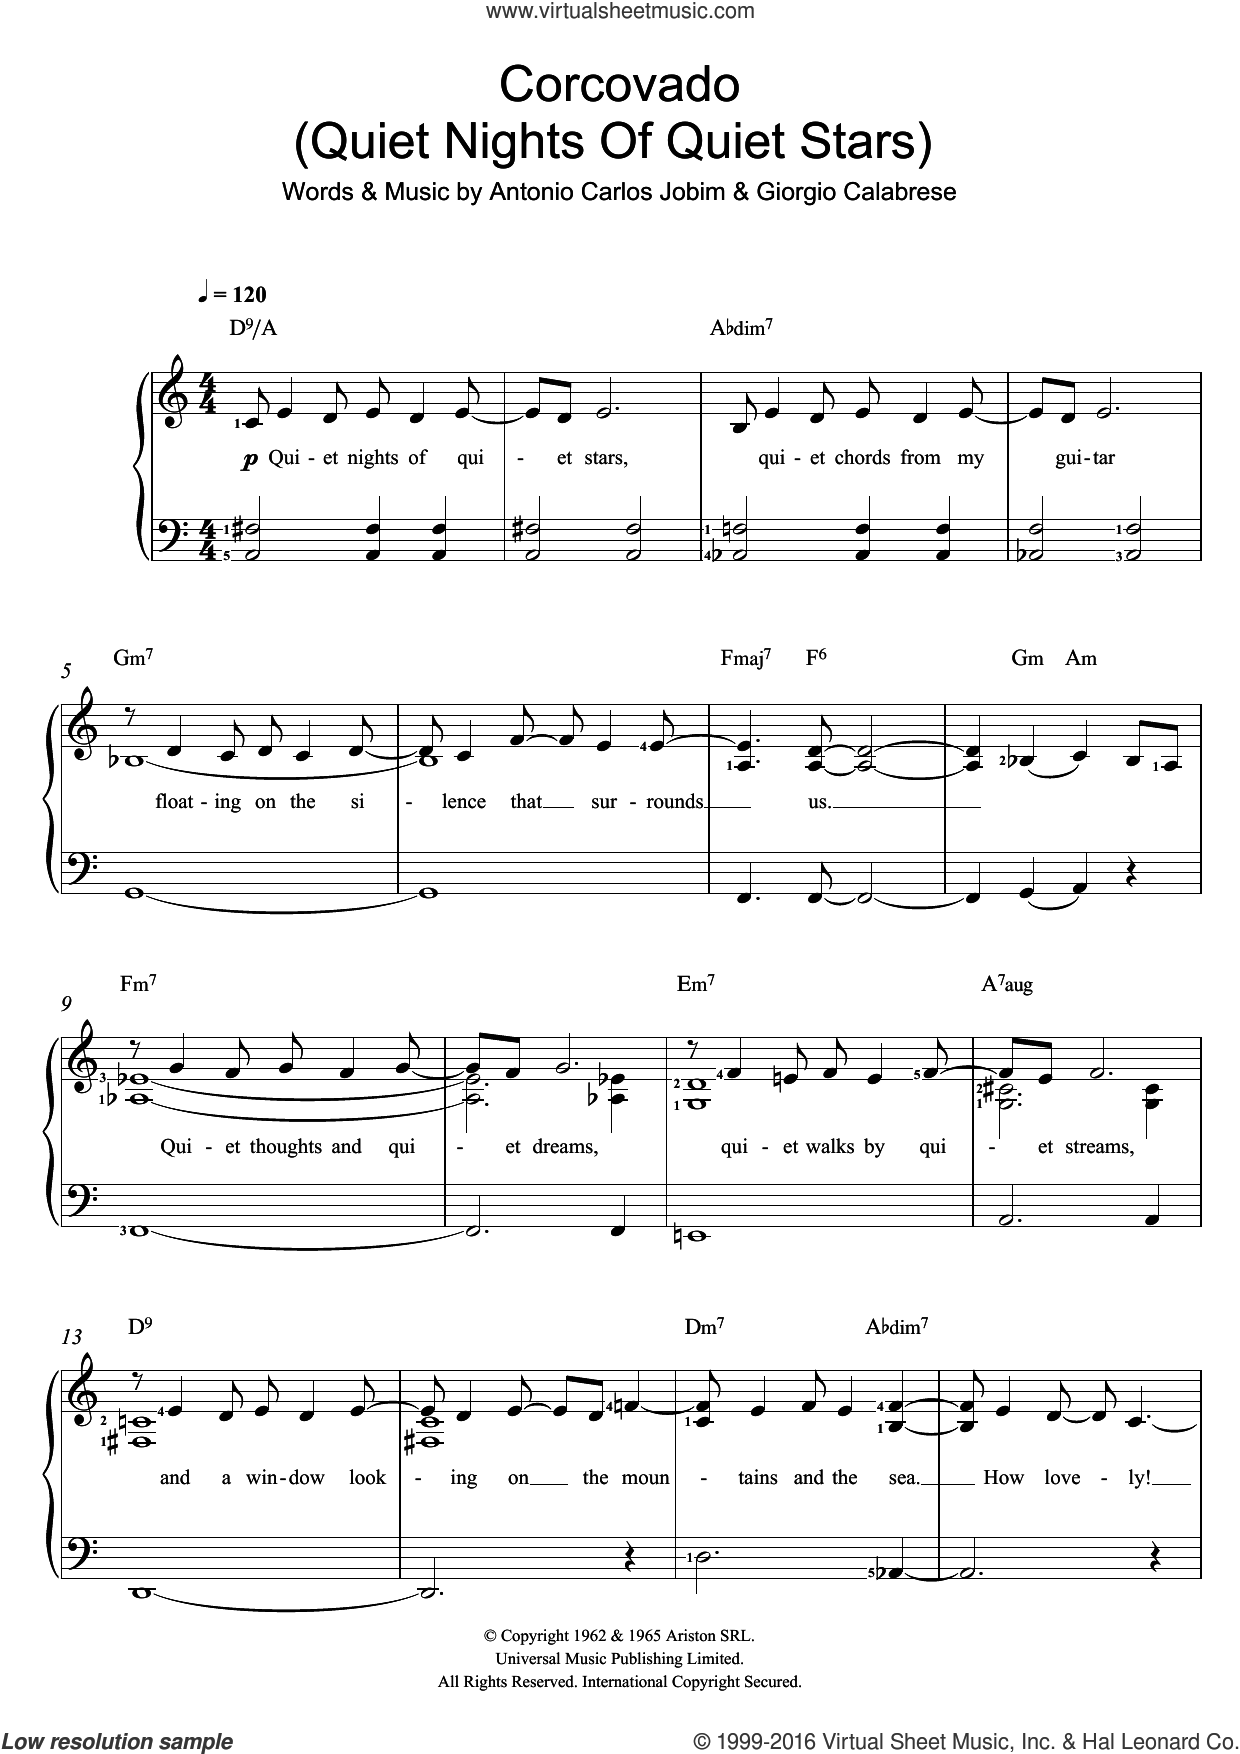 Corcovado (Quiet Nights Of Quiet Stars) sheet music for voice and piano by Antonio Carlos Jobim and Giorgio Calabrese, intermediate skill level